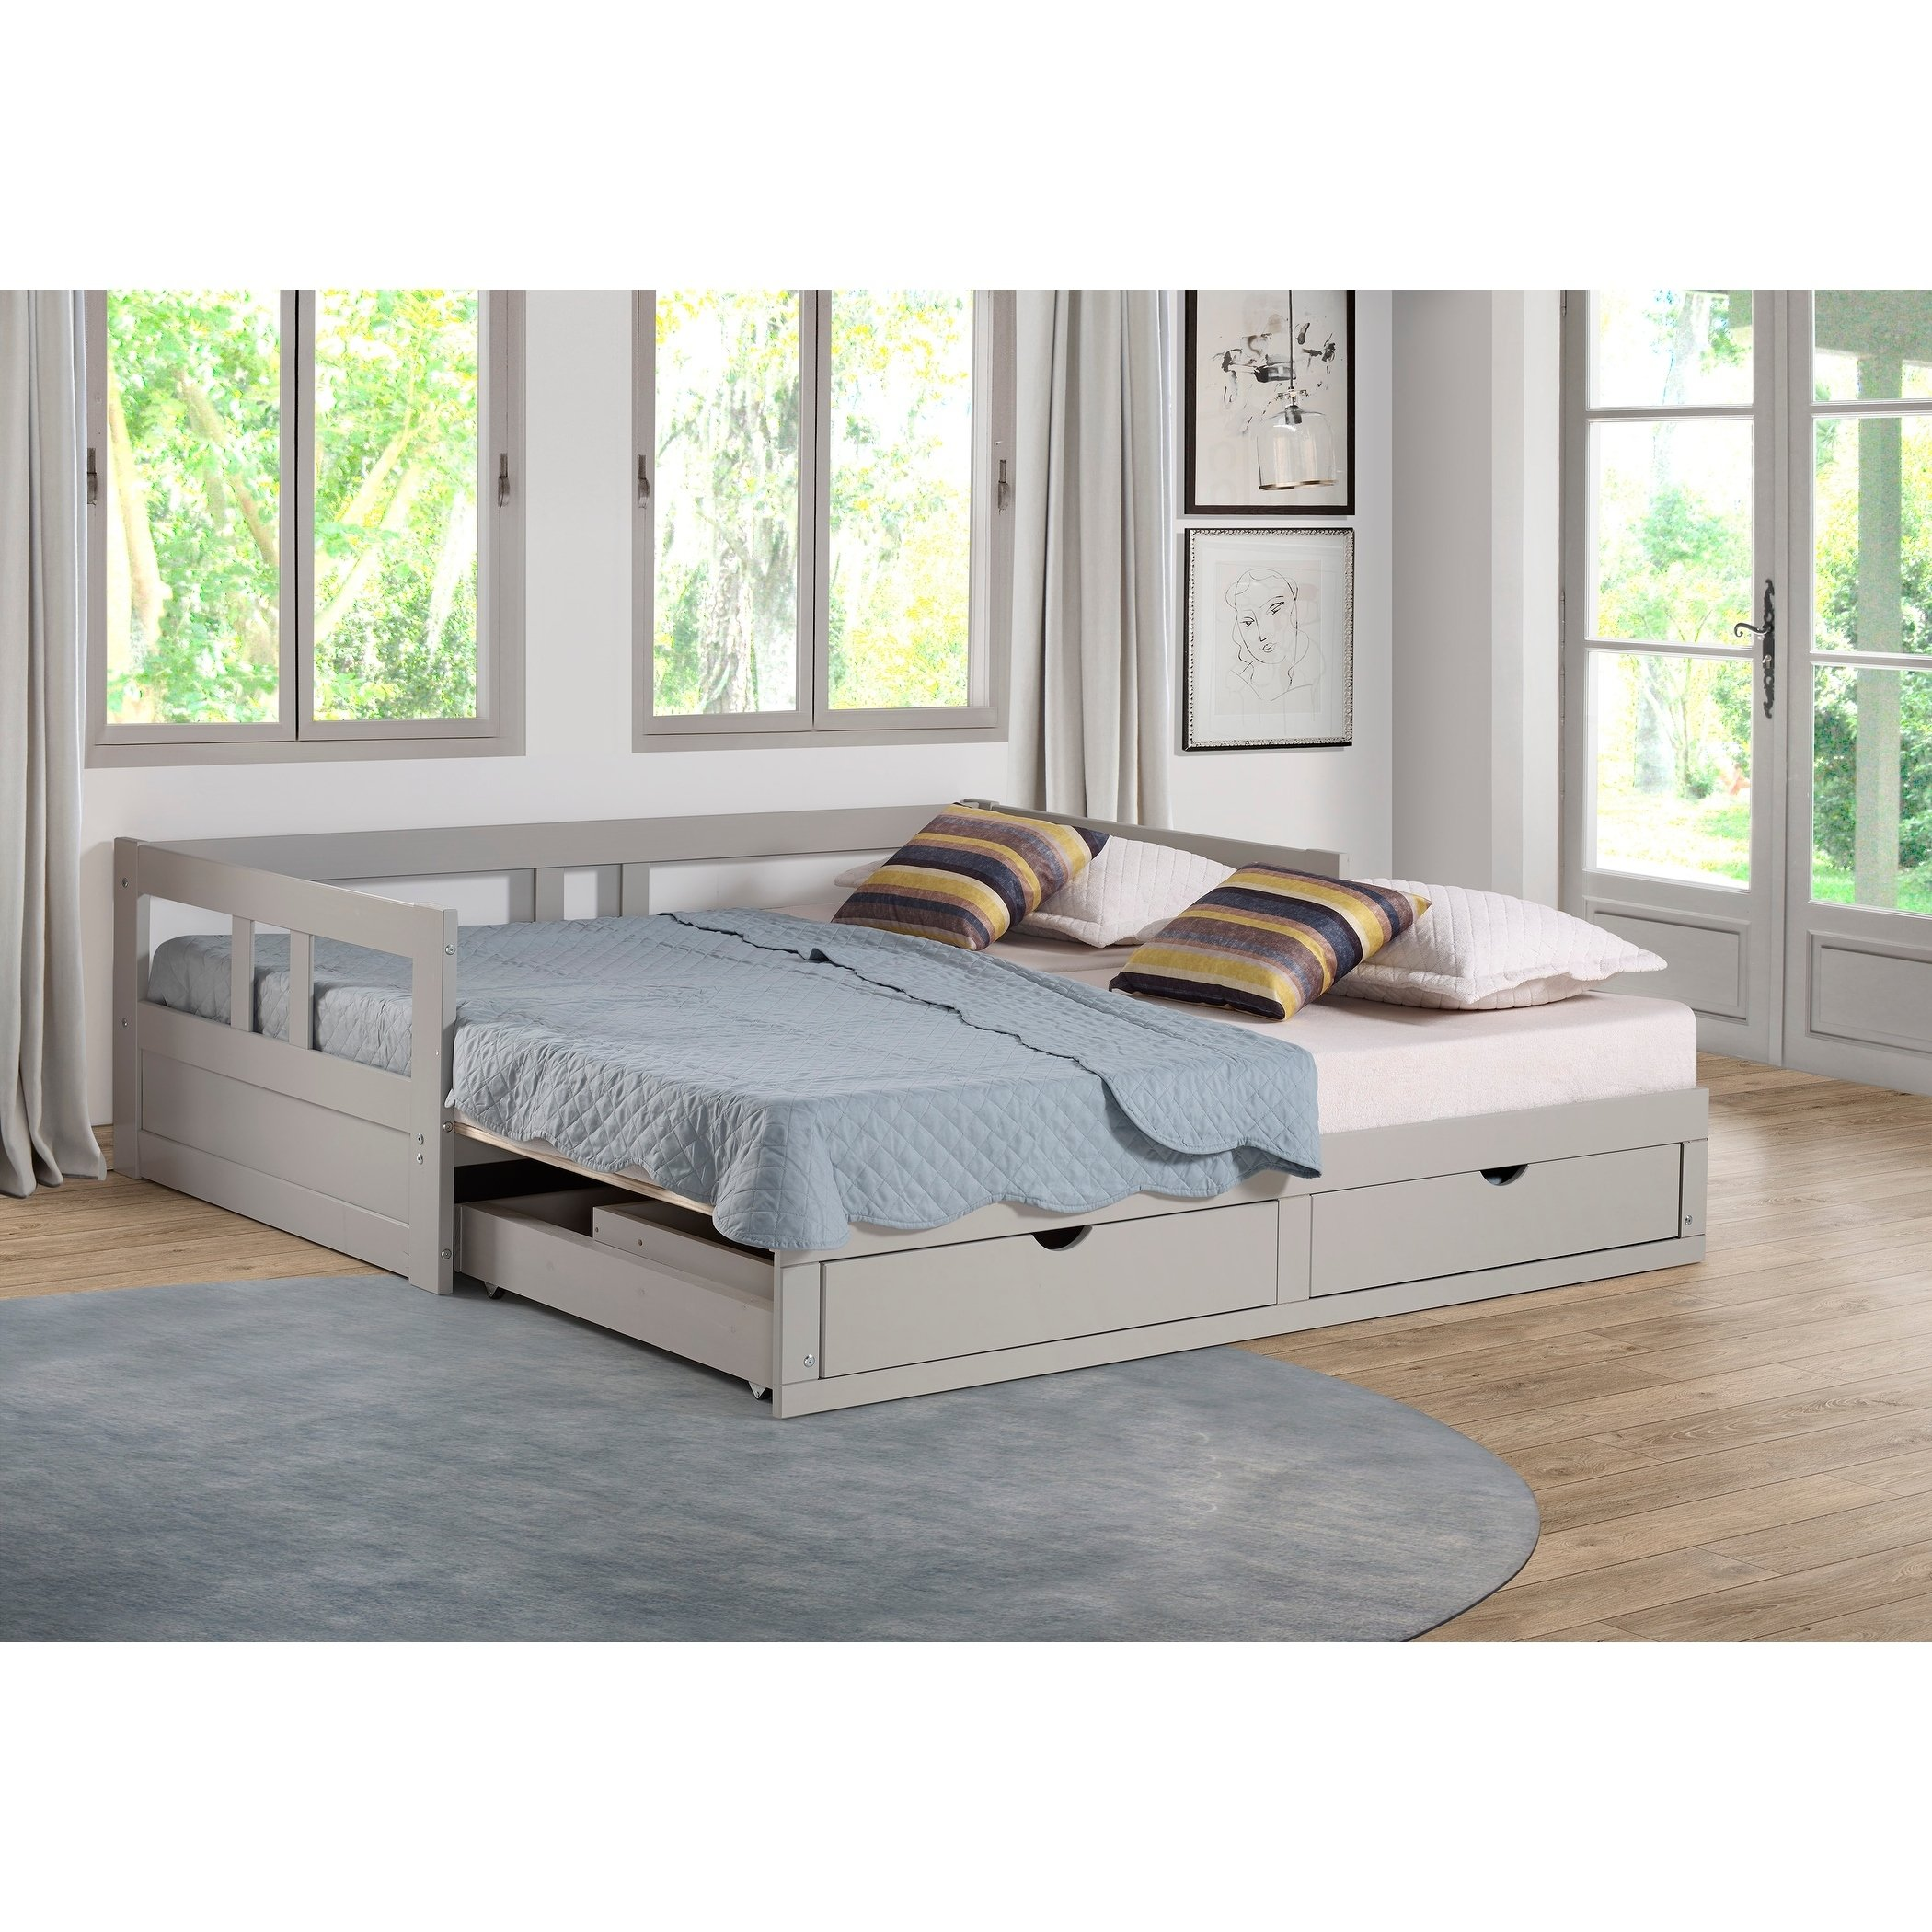 Bed With Trundle And Storage Drawers, La Salle Twin Captain S Bed With Trundle And Storage Drawers White